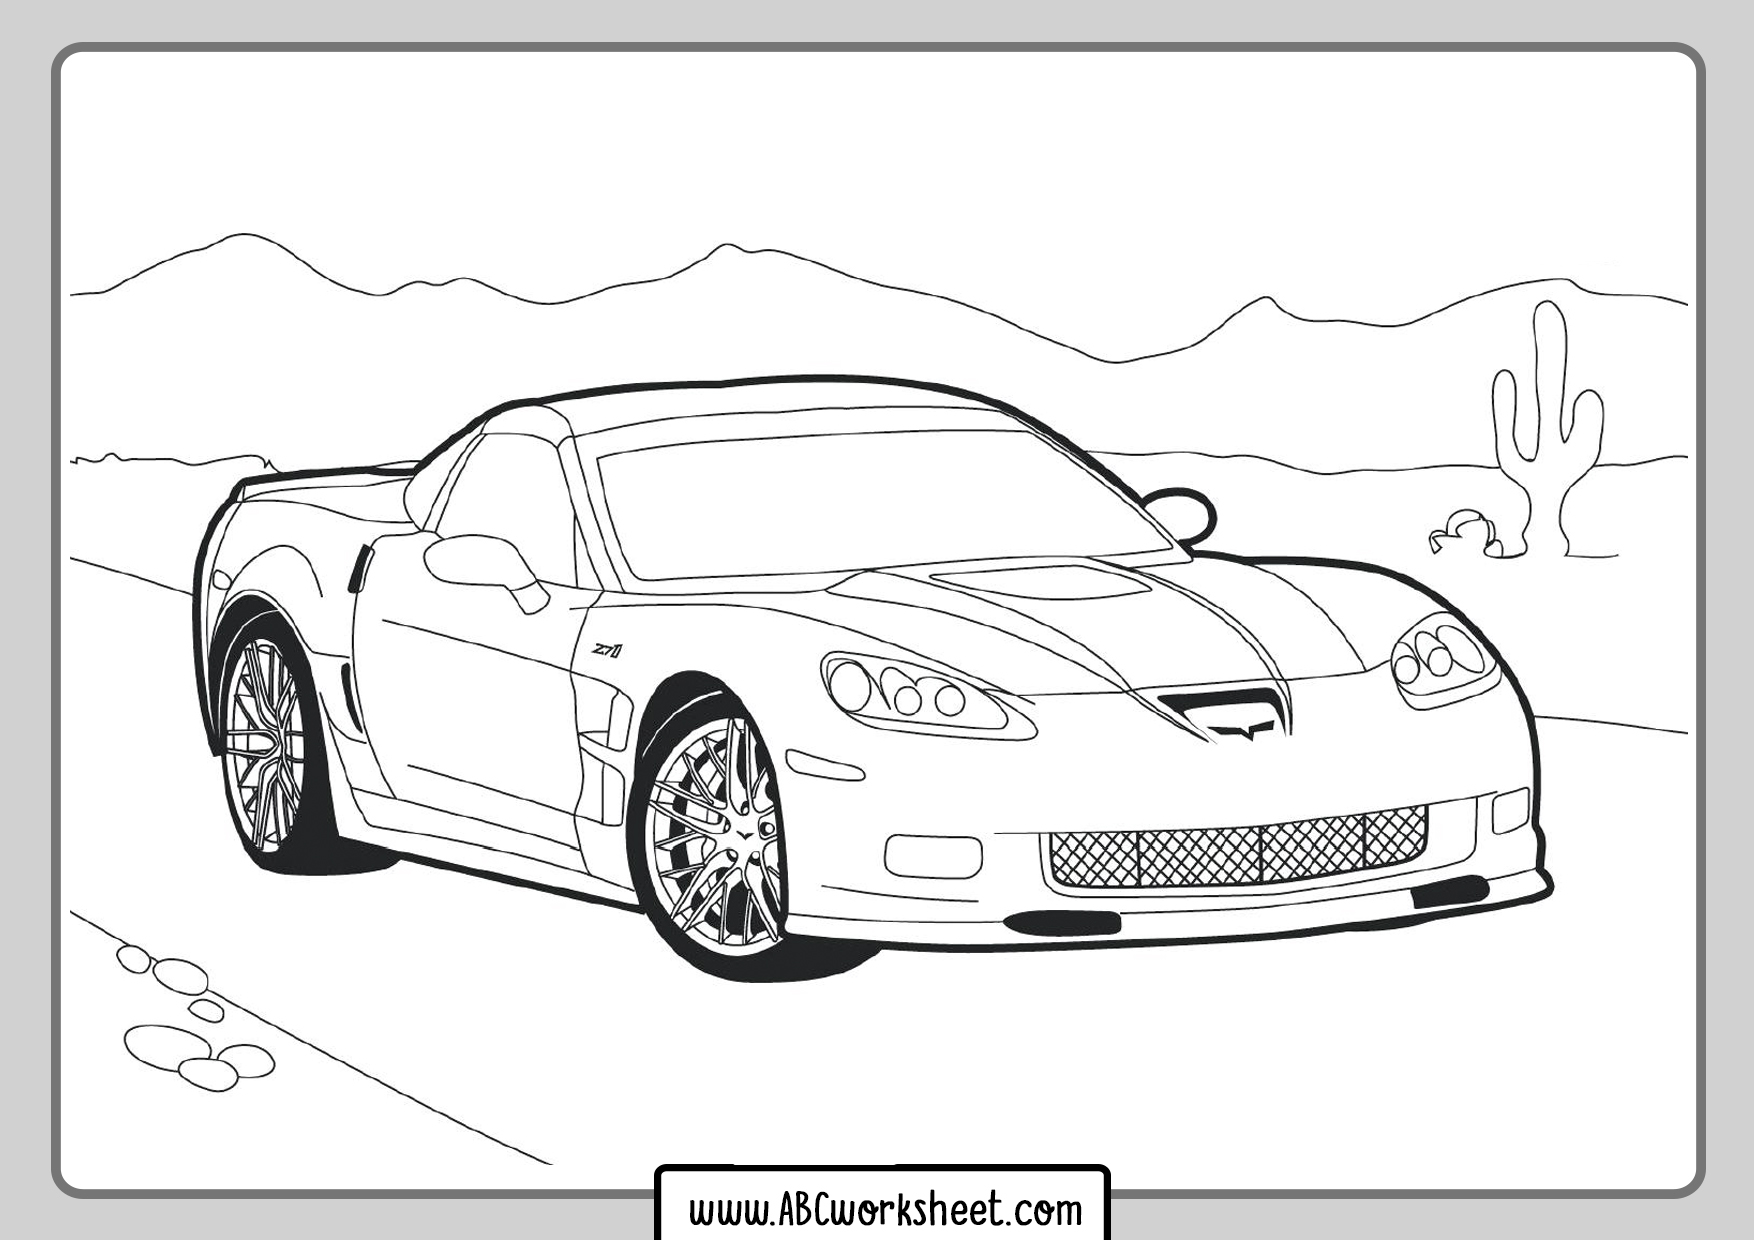 Print Racing Car Coloring Pages